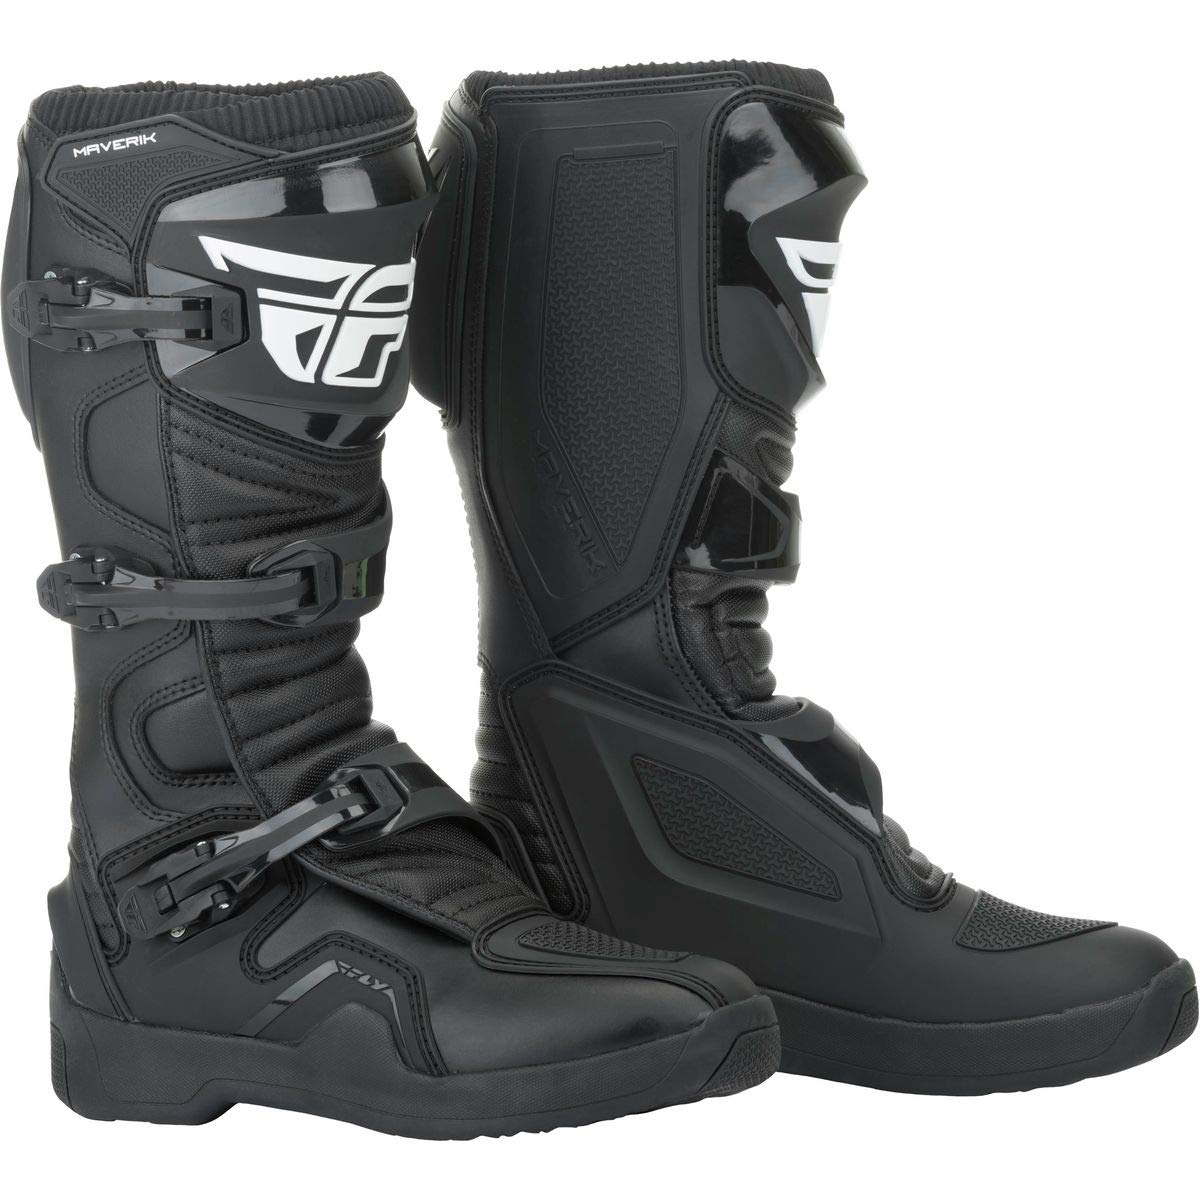 Fly Racing 2019 Maverik Boots (13) (Black) by Fly Racing